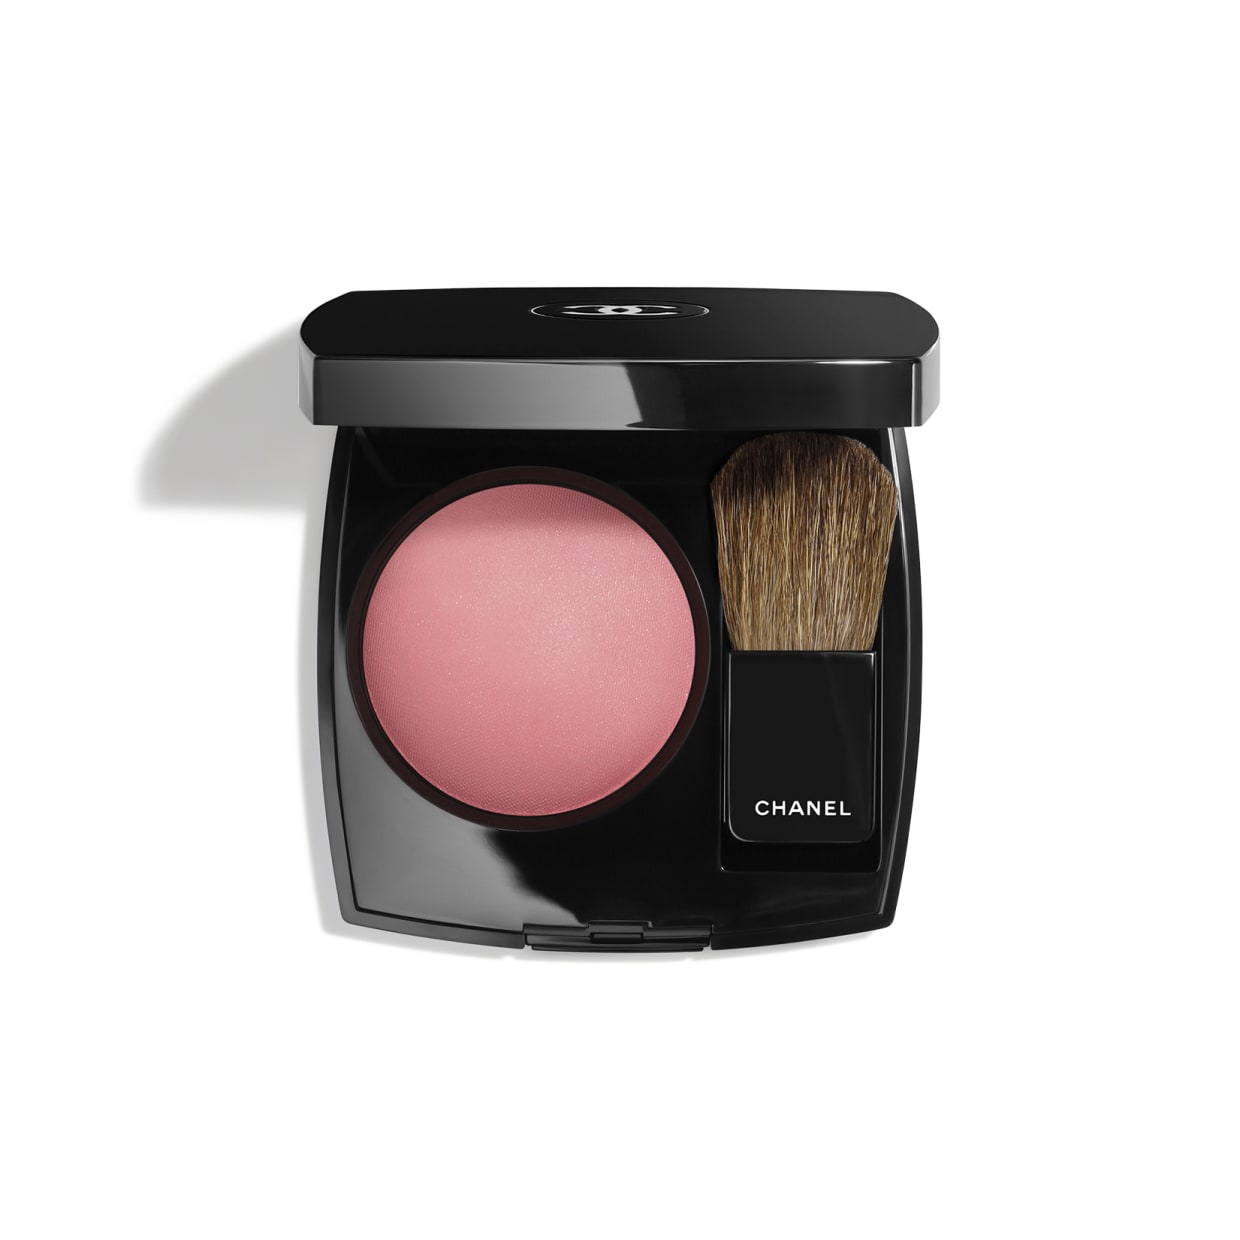 Chanel - Jouse Contaste Powder Blush, Foschia Rosa